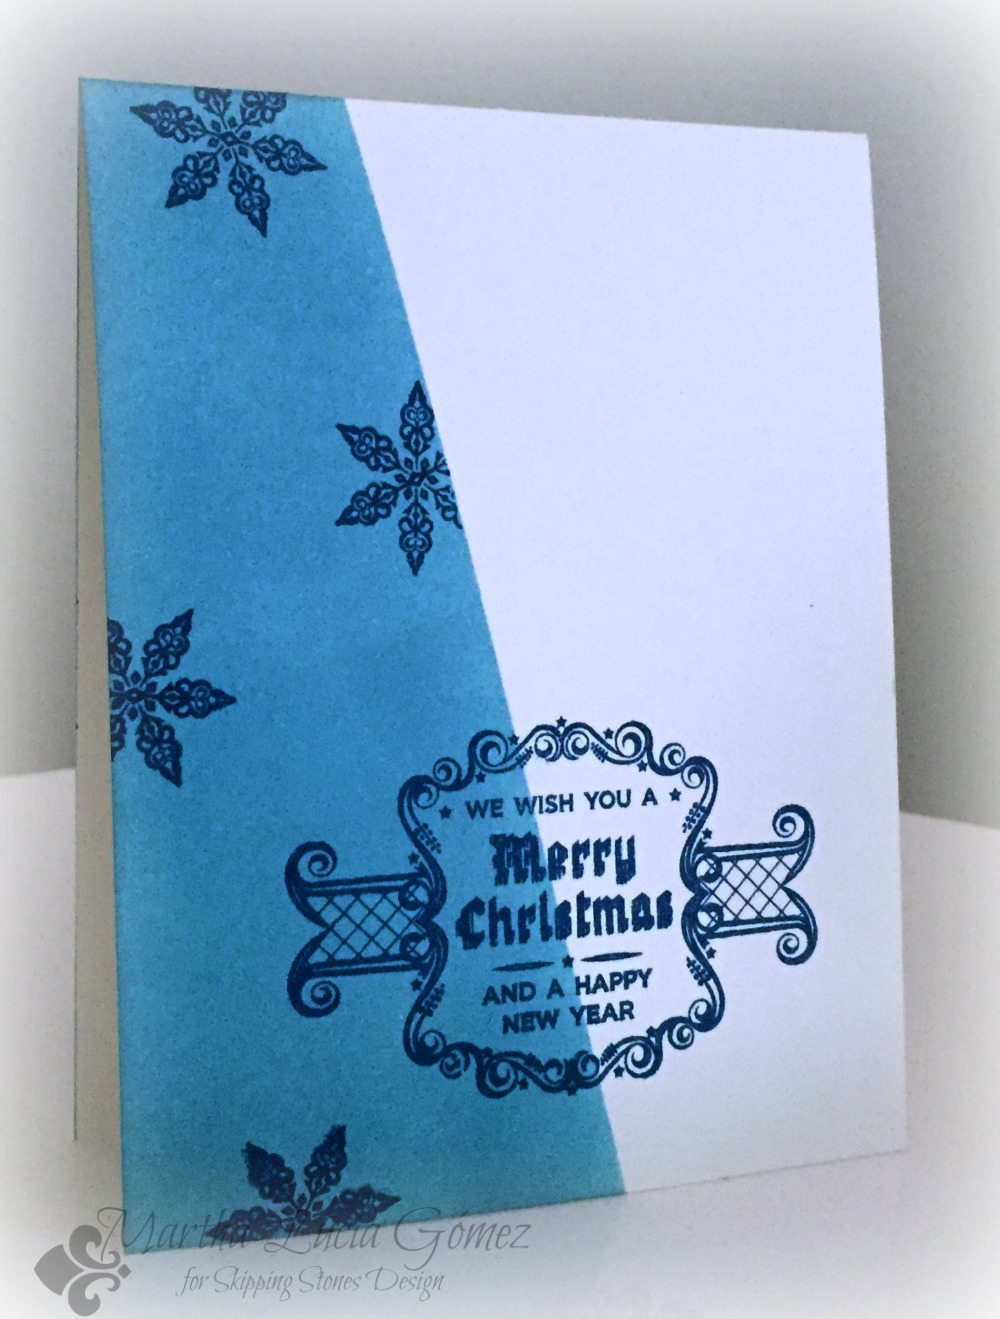 MASKING TECHNIQUE FOR CHRISTMAS CARDS